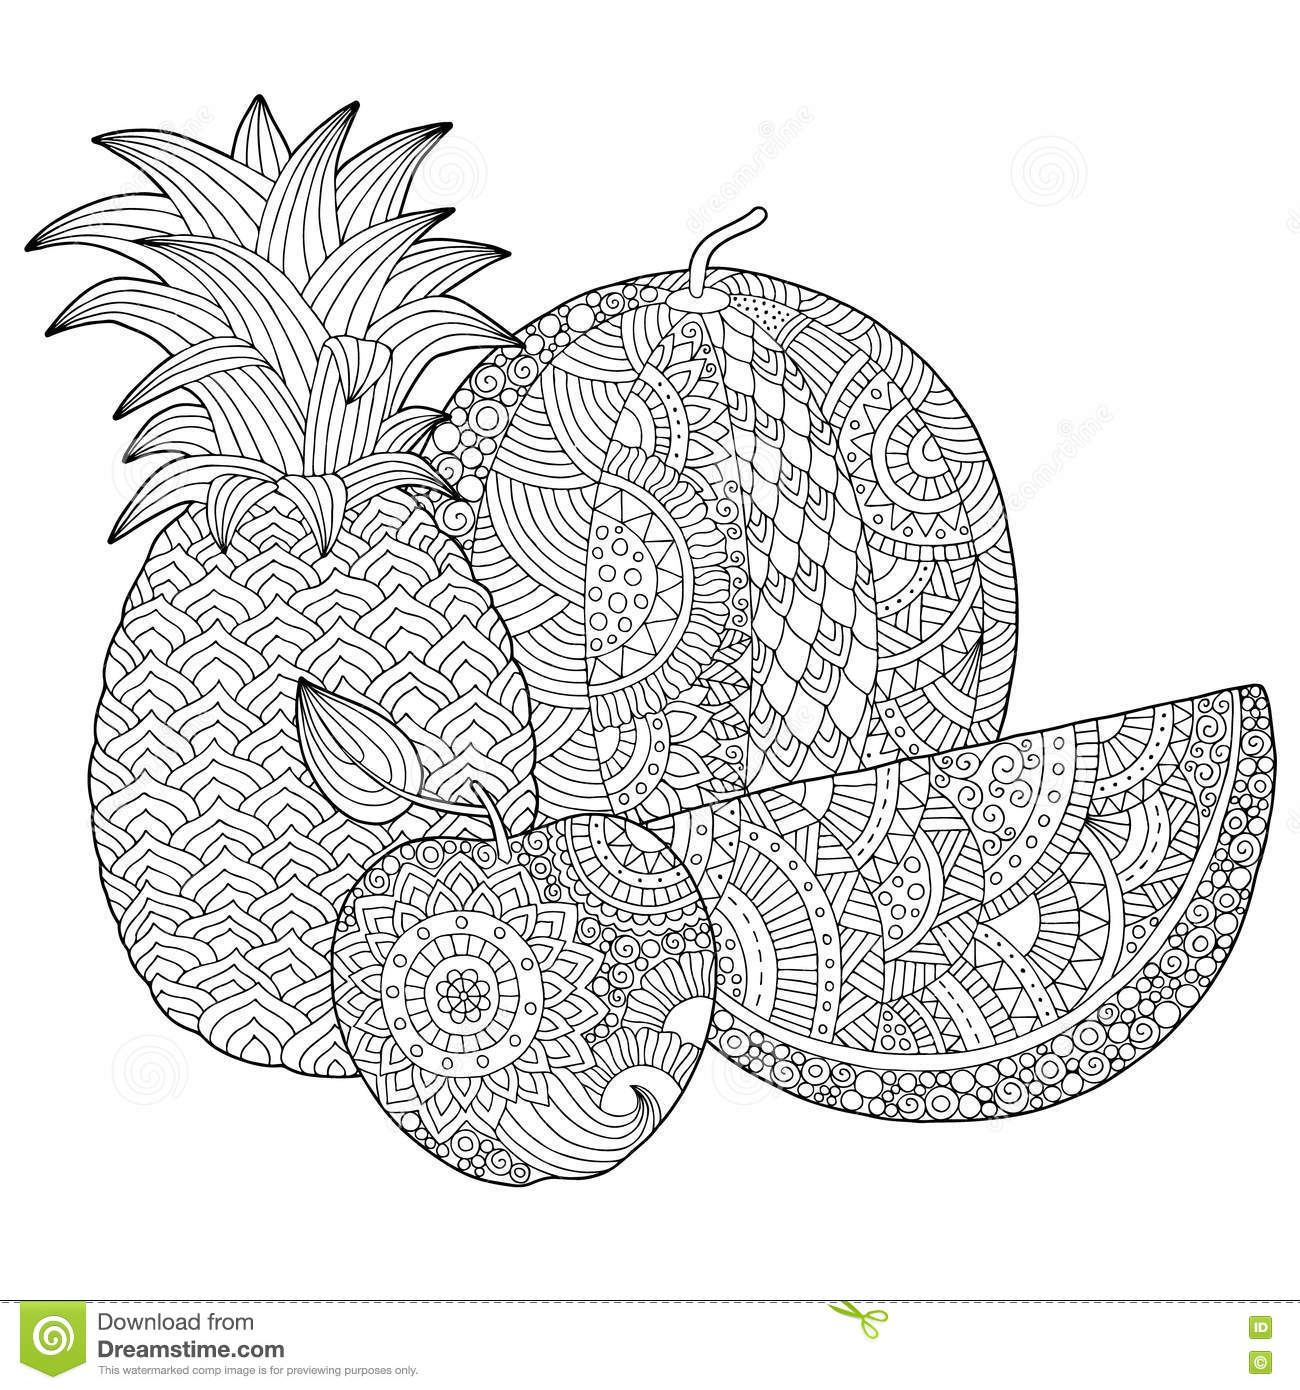 Pineapple coloring page zentangle coloring coloring pages - Ananas dessin ...